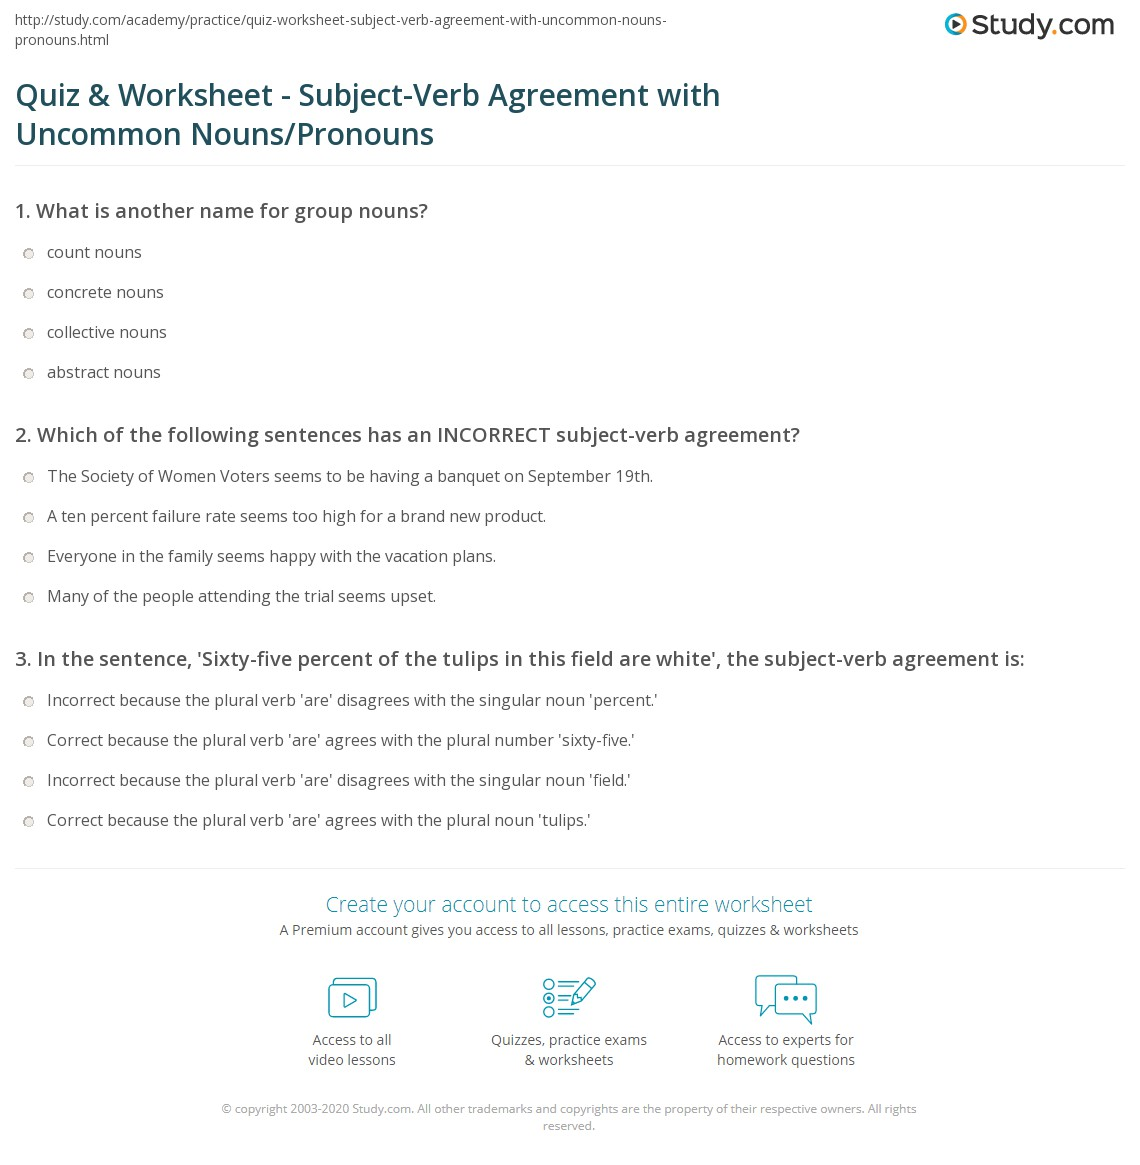 Worksheet Subject And Verb Agreement Worksheets Grass